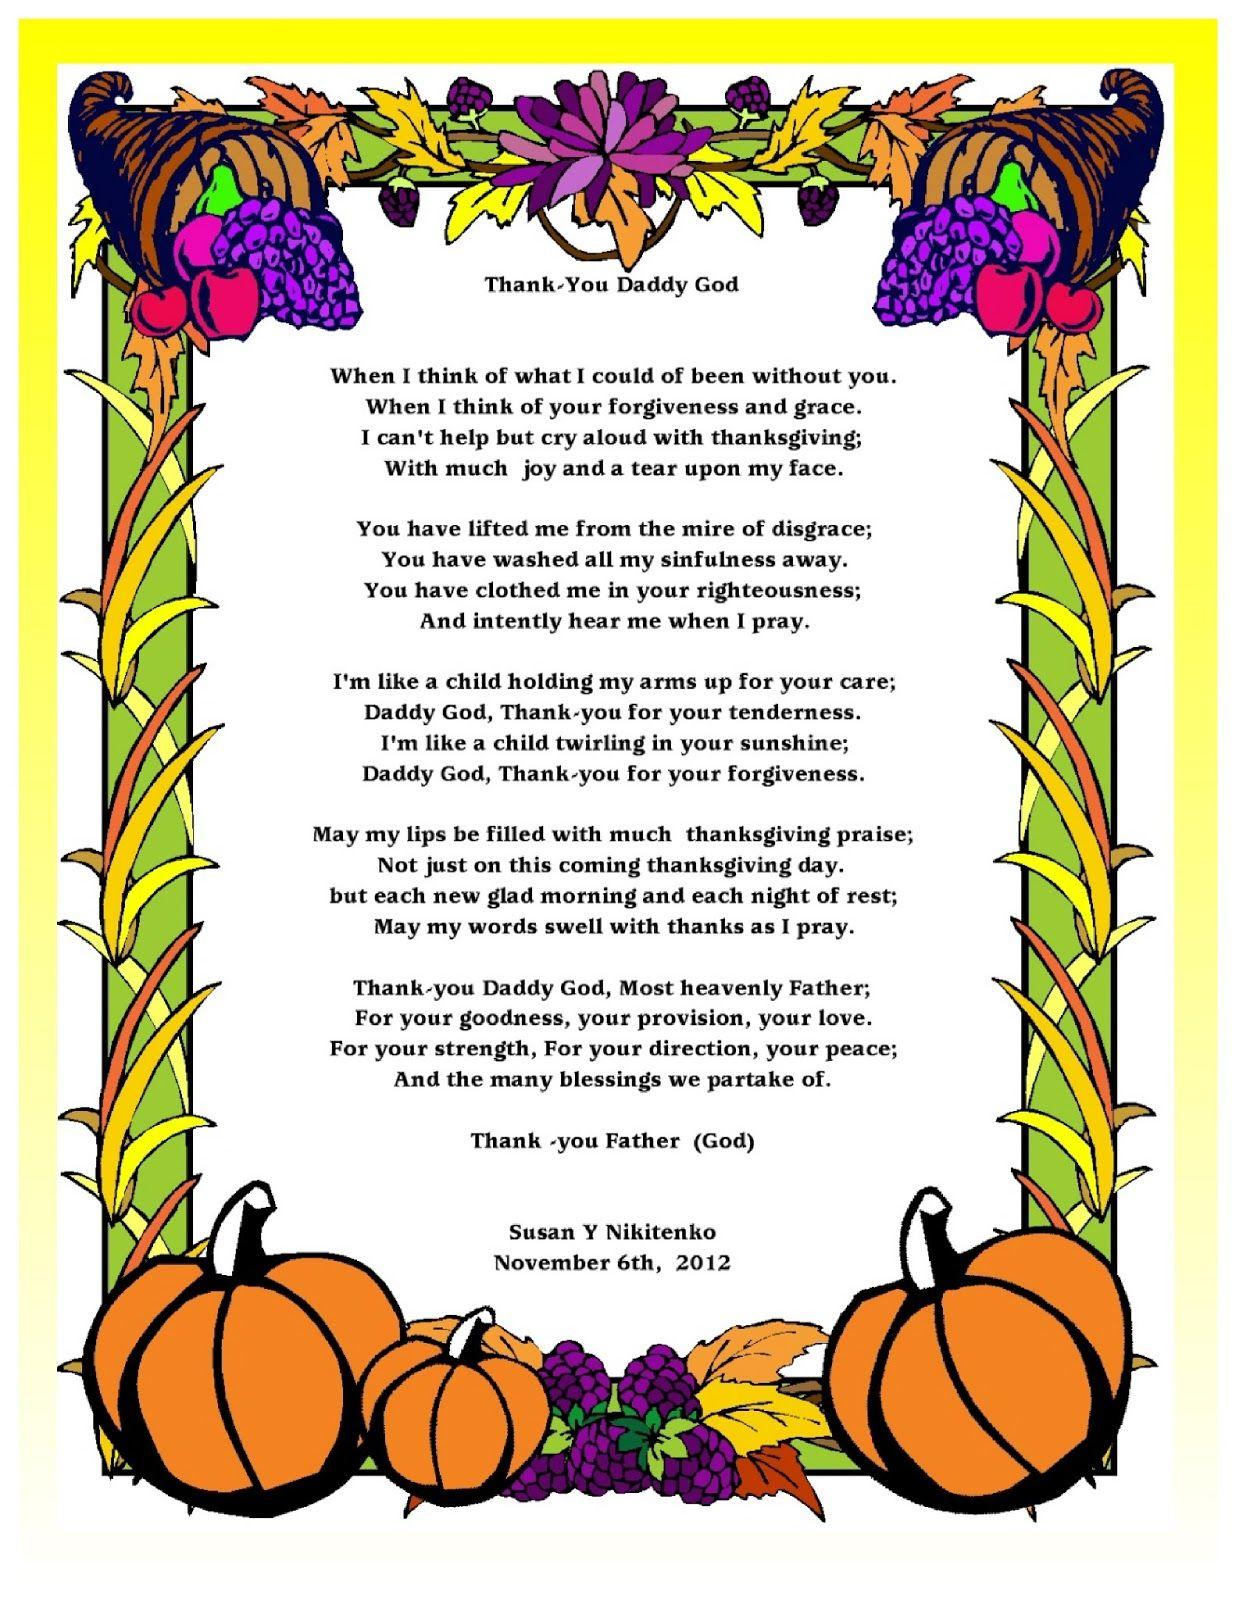 Blessings Thanksgiving poems pictures exclusive photo